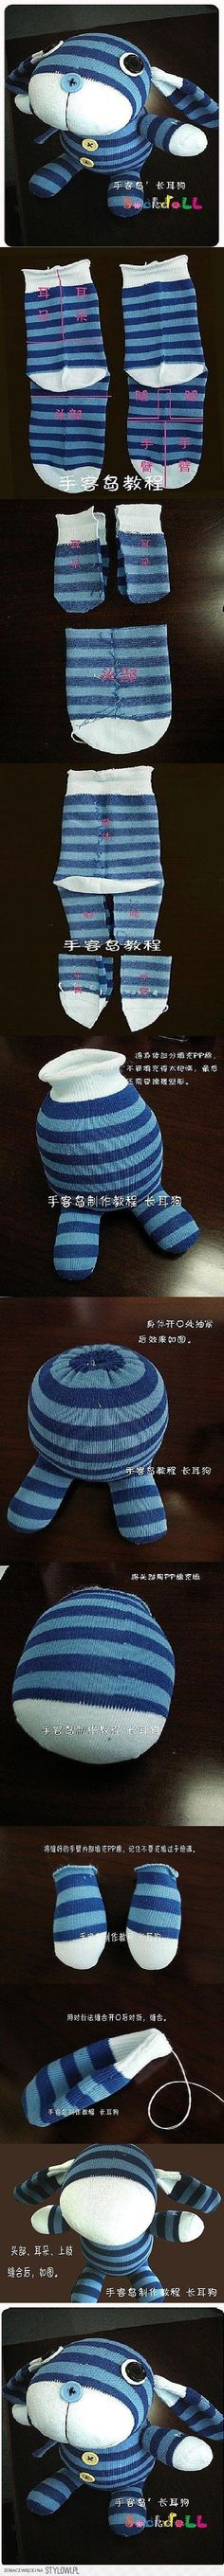 DIY Fantasy Sock Doll DIY Projects | UsefulDIY.com na Stylowi.pl